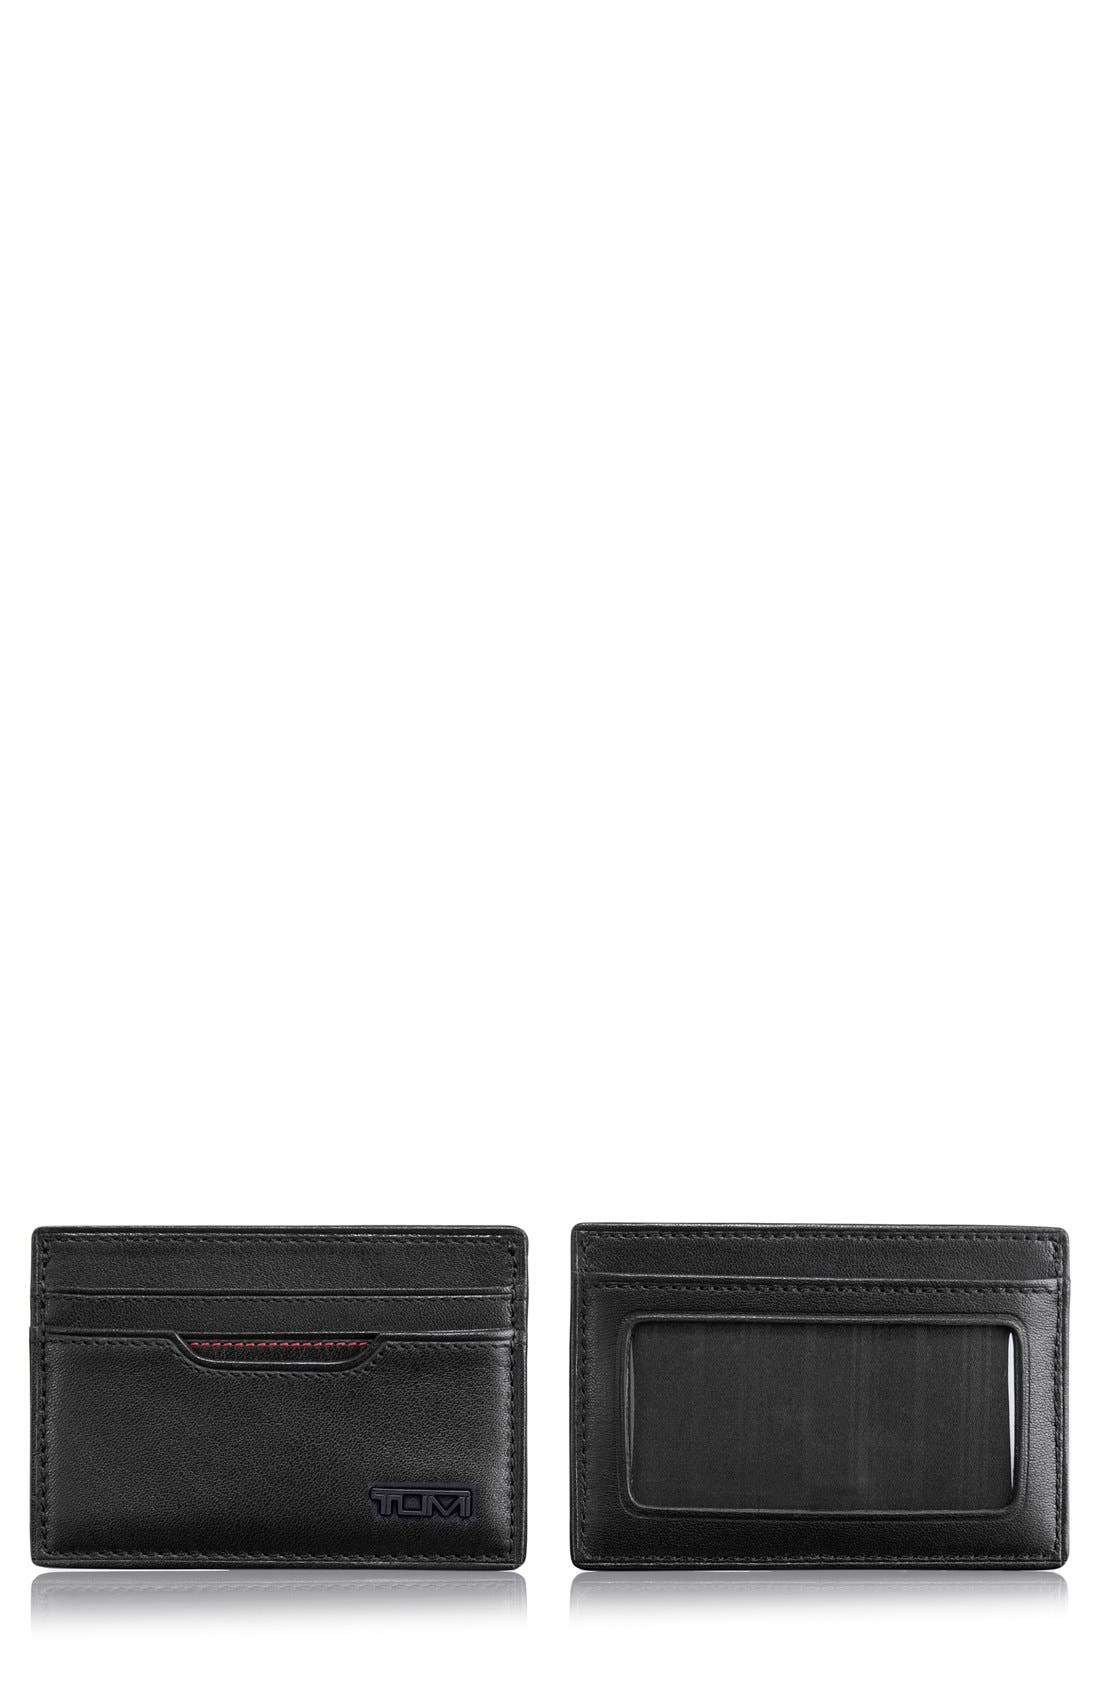 Tumi 'Delta - ID Lock™' Shielded Slim Card Case & ID Wallet